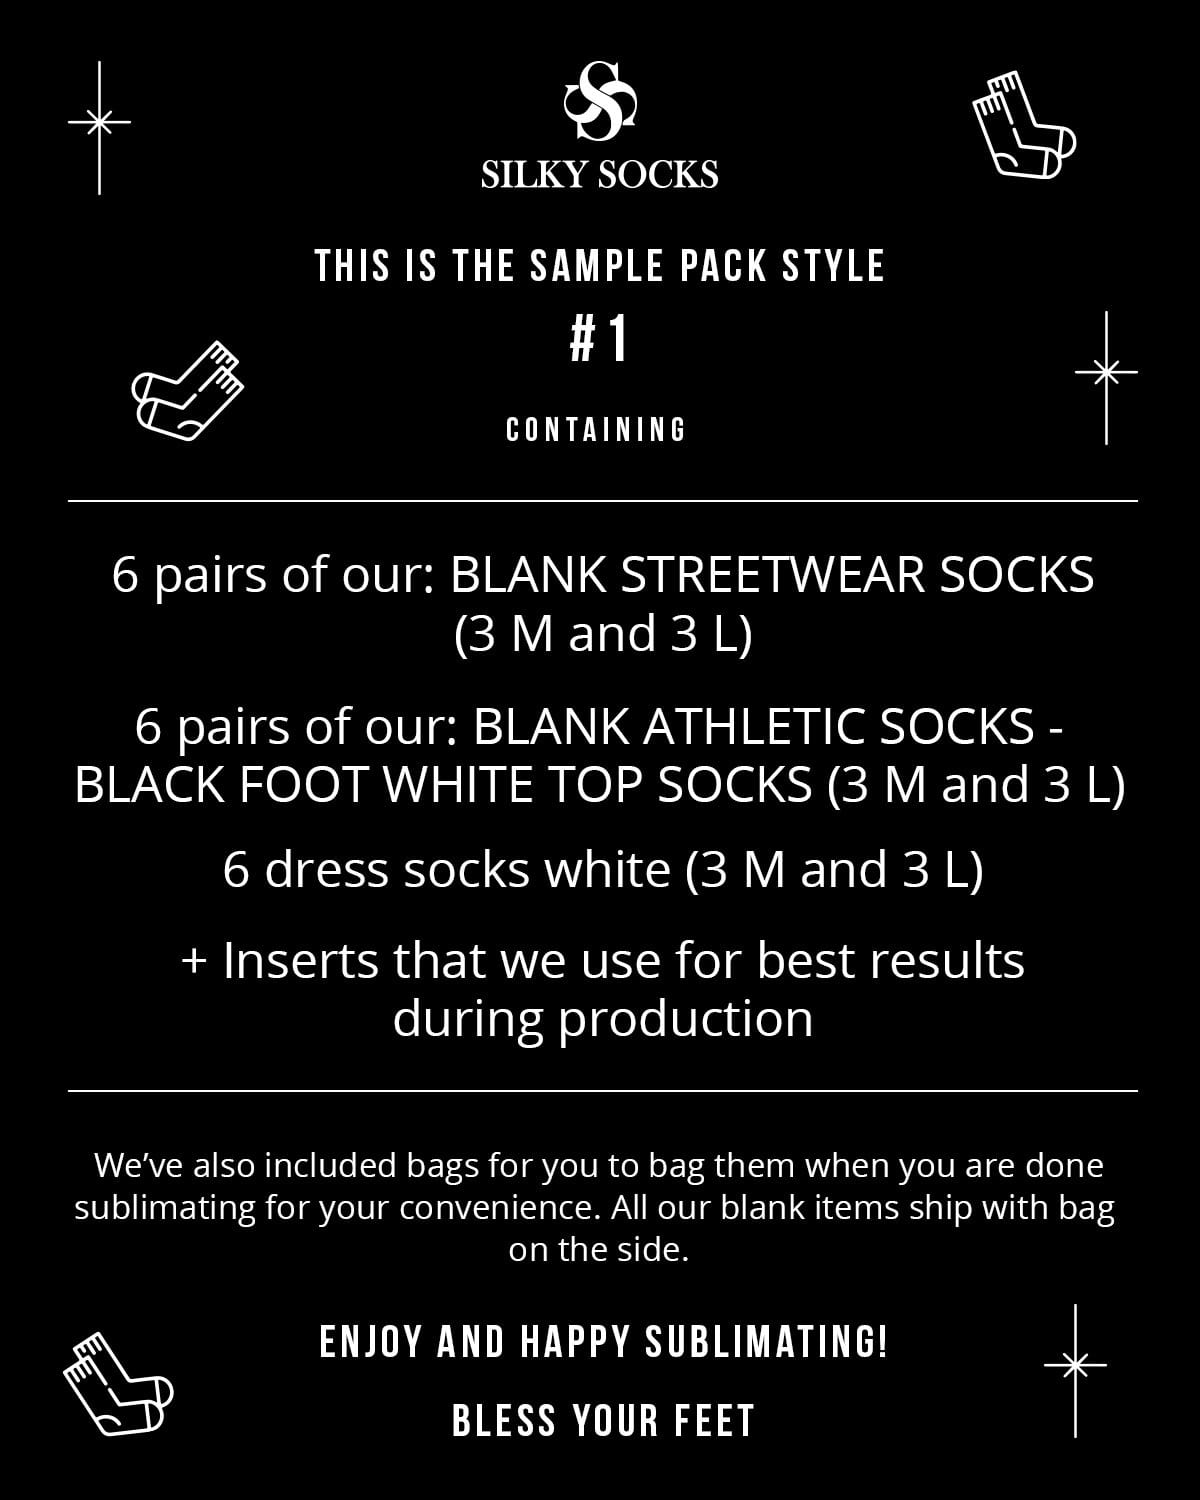 Sample Packs of Blank Socks